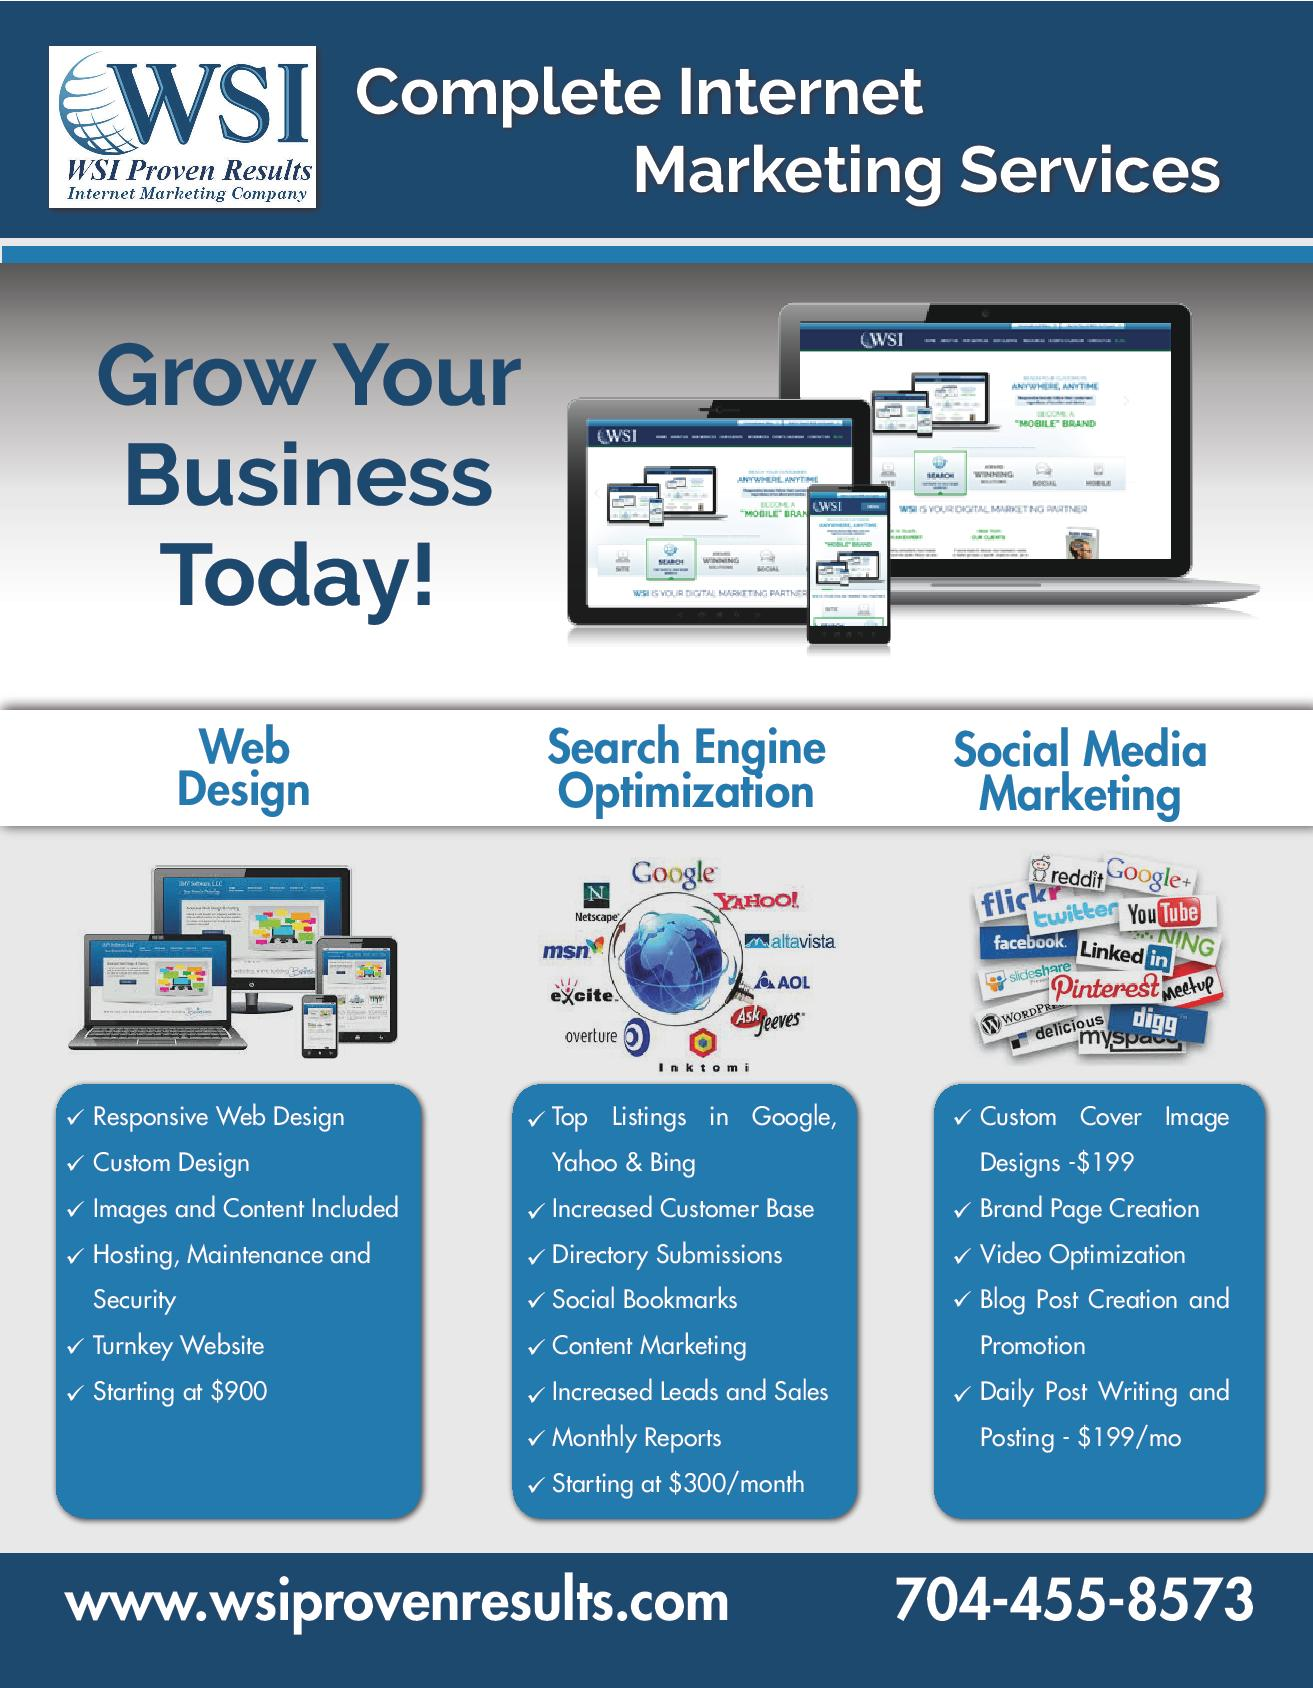 Grow Your Business Online Today - WSI Proven Results